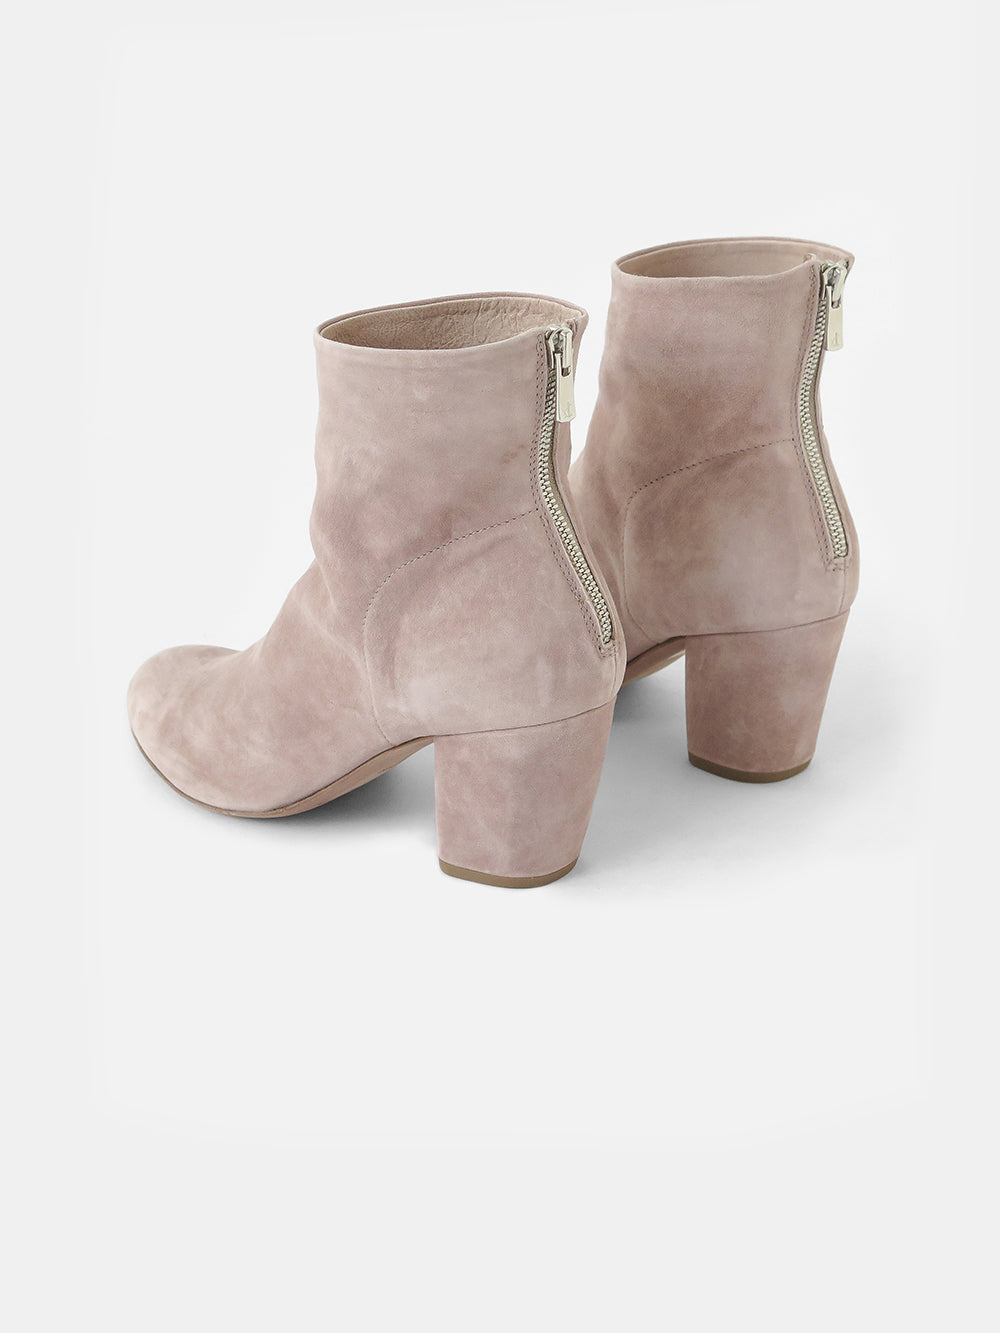 officine creative julie boot in misty rose